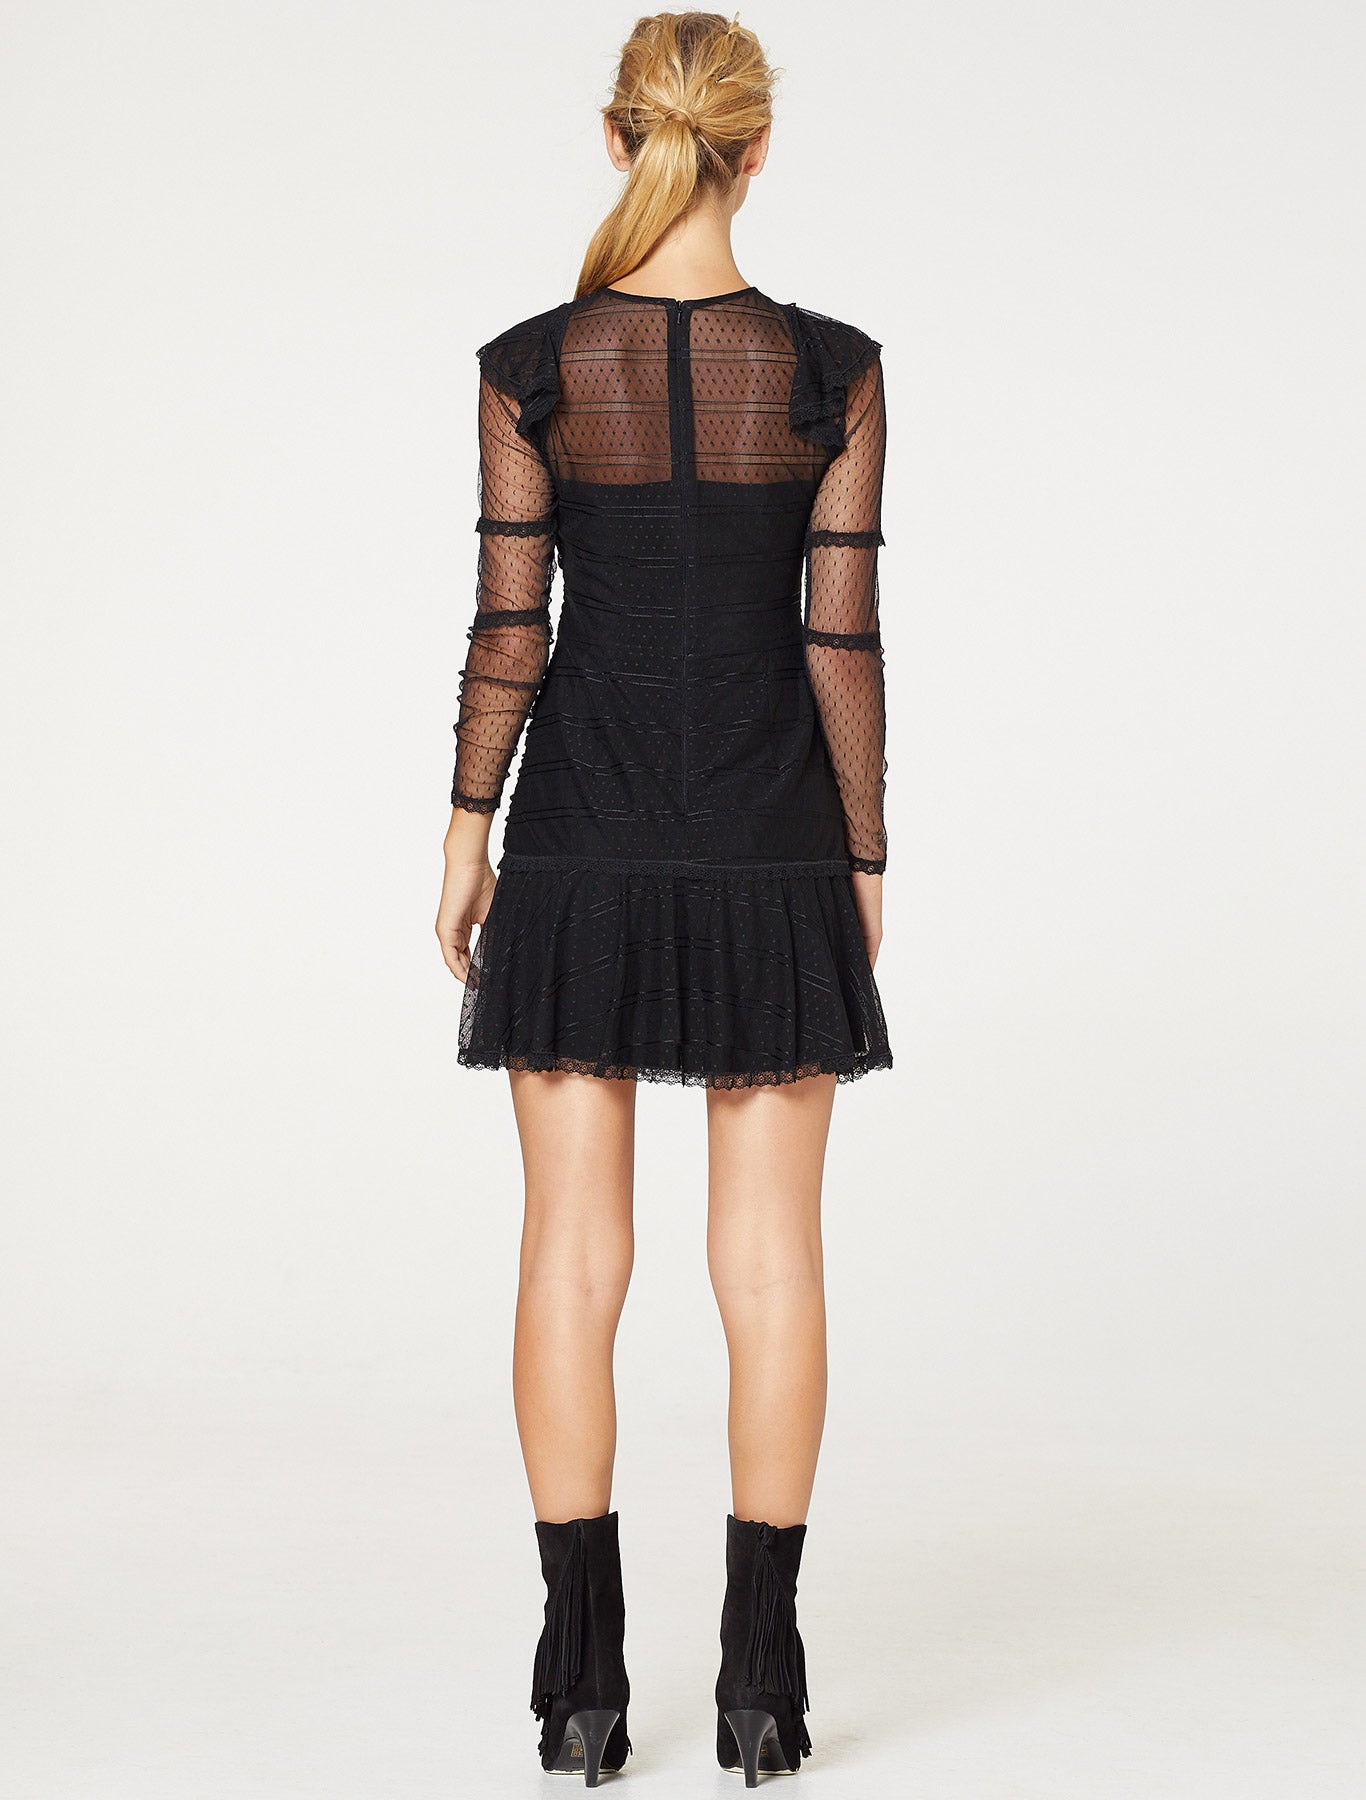 SHEER GLORY MINI DRESS